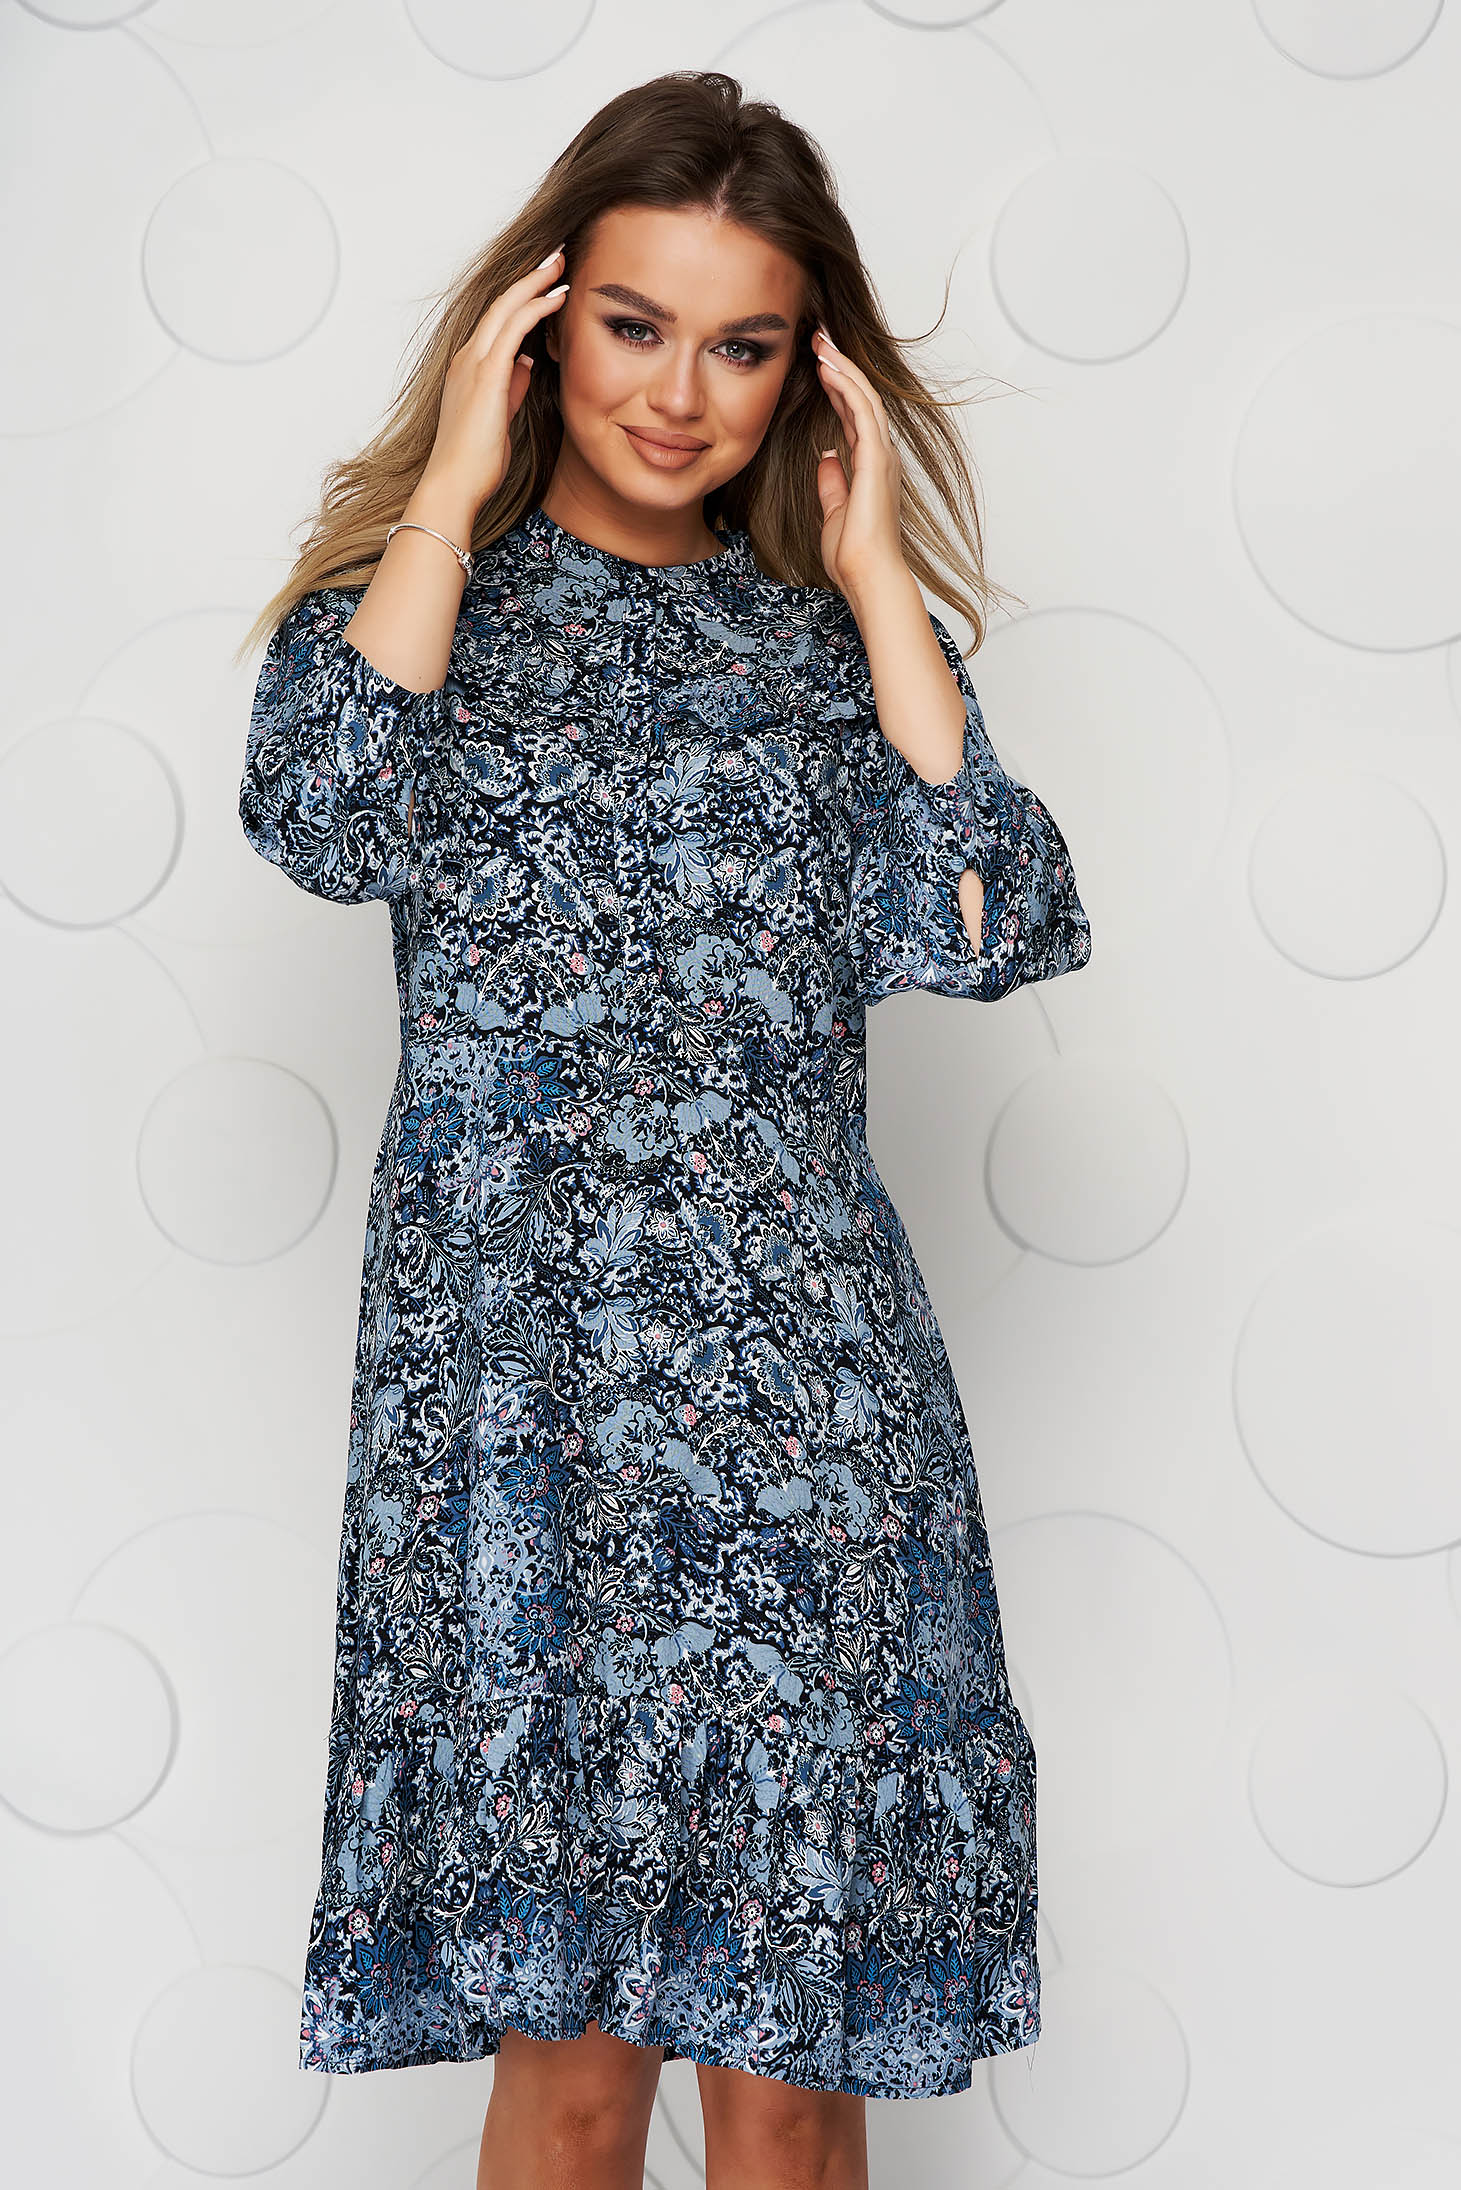 Blue dress casual short cut flared airy fabric with floral print